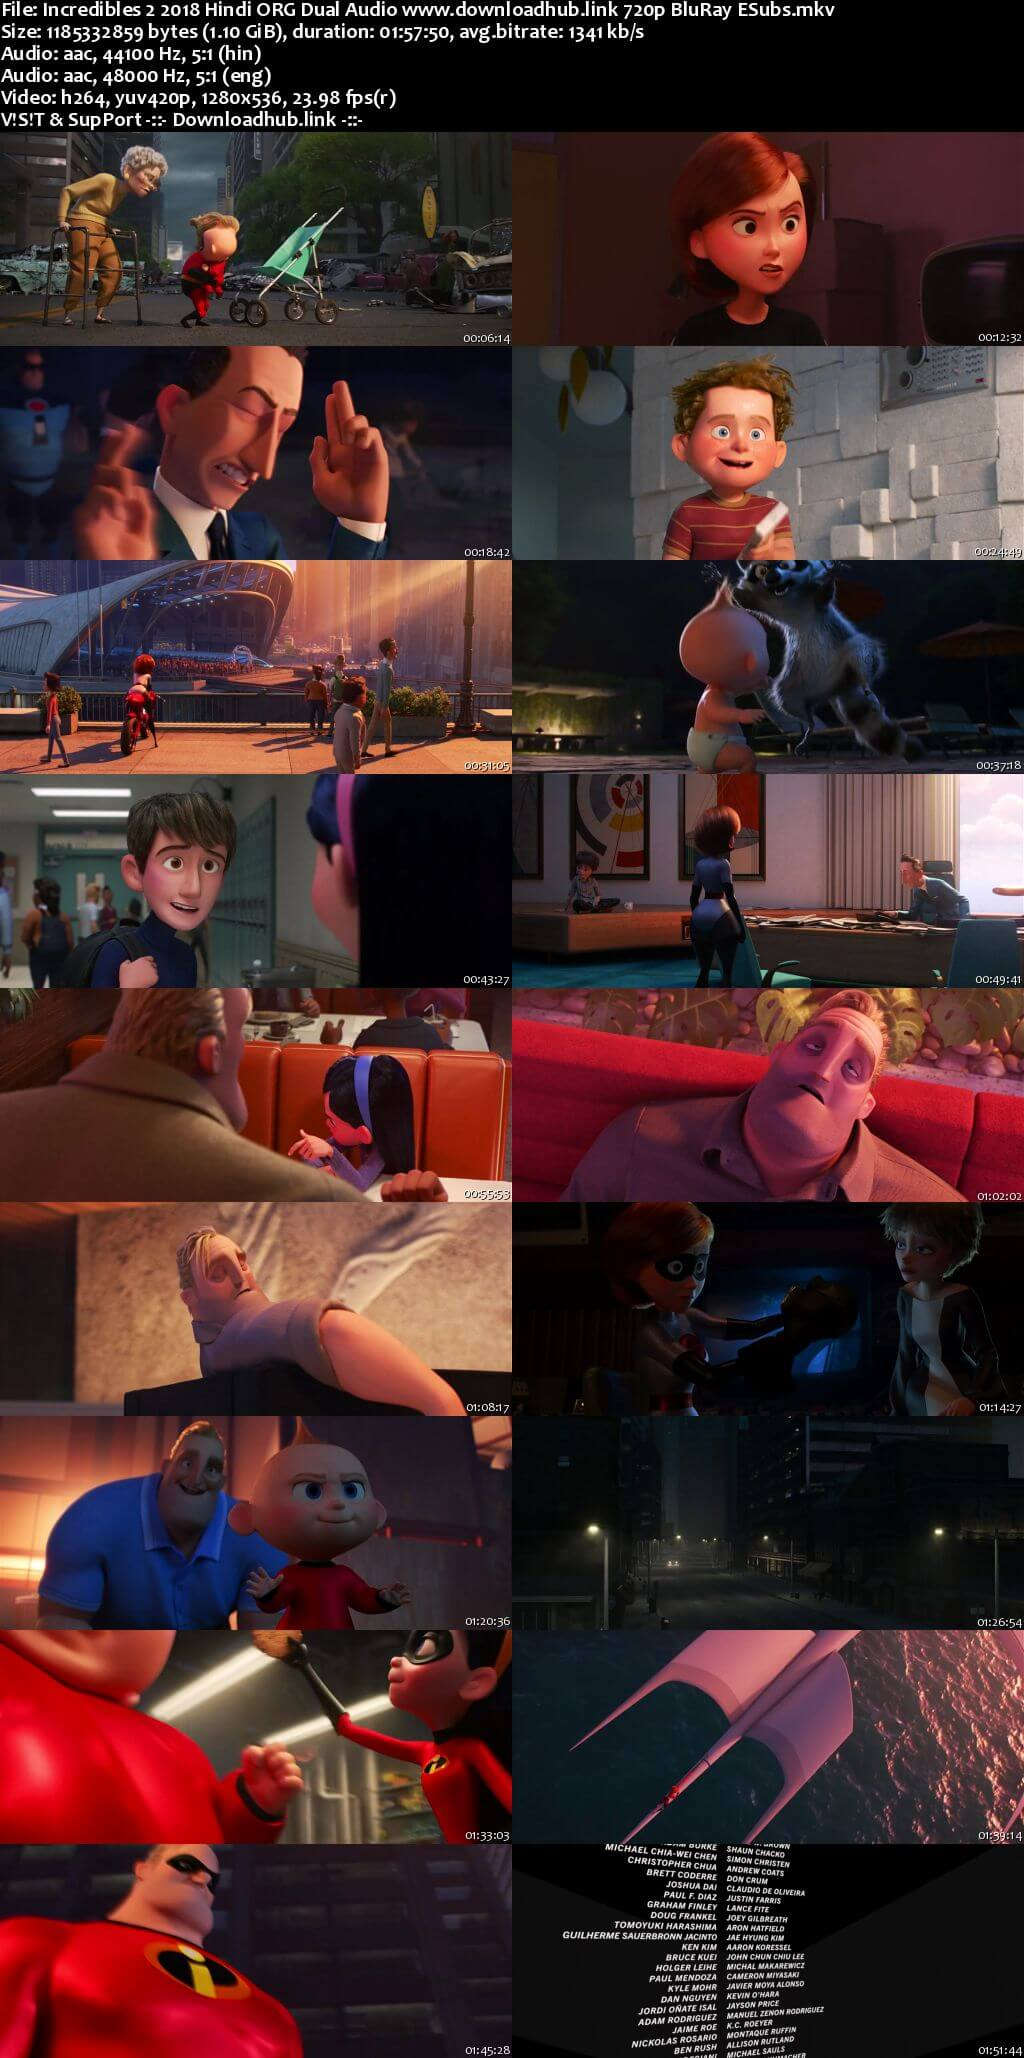 Incredibles 2 2018 Hindi ORG Dual Audio 720p BluRay ESubs